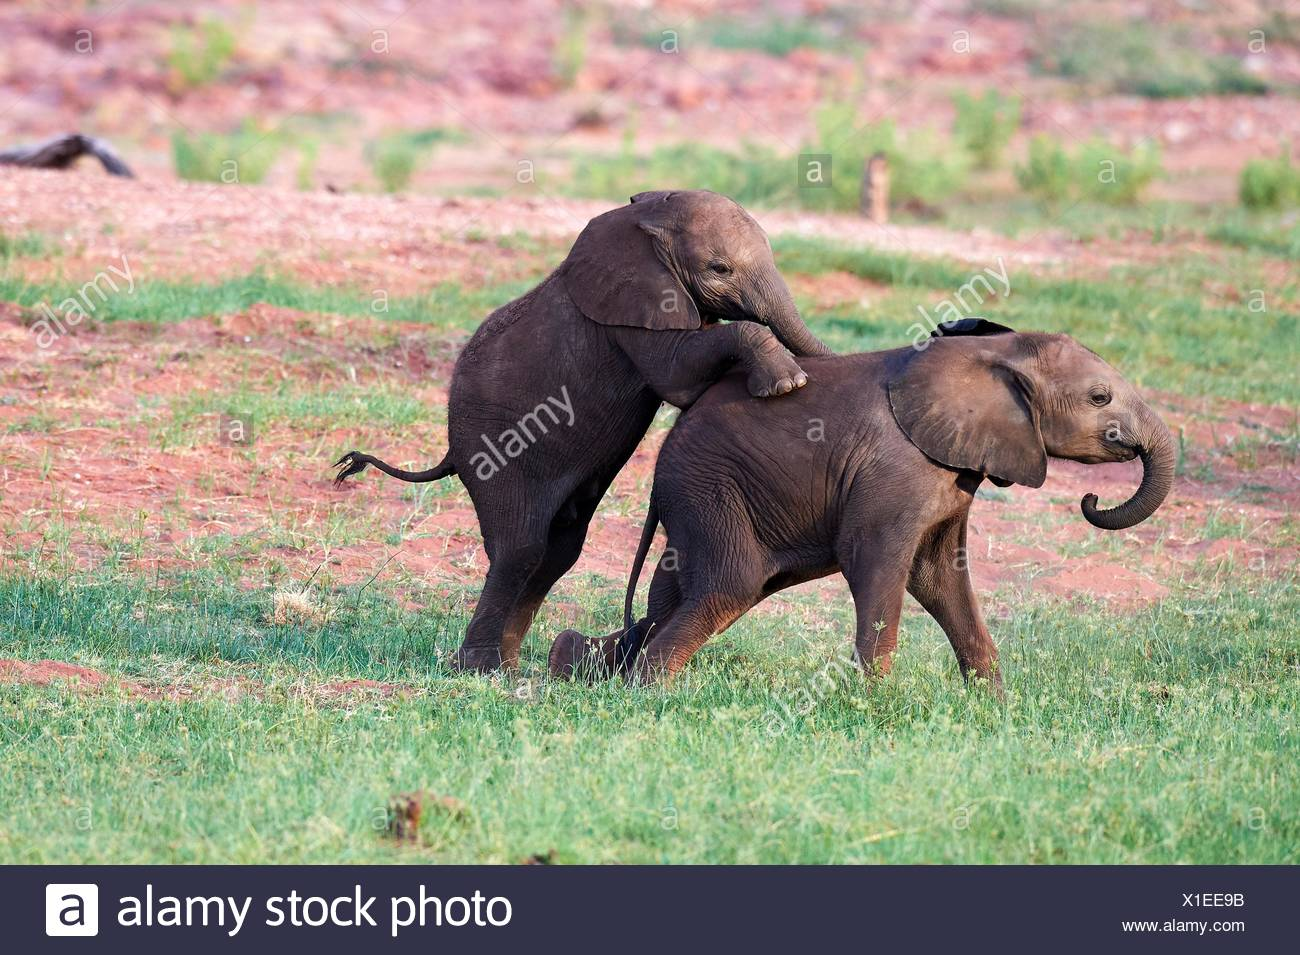 African elephant, calves of different ages playing (Loxodonta africana), Matusadona National Park, Zimbabwe. - Stock Image